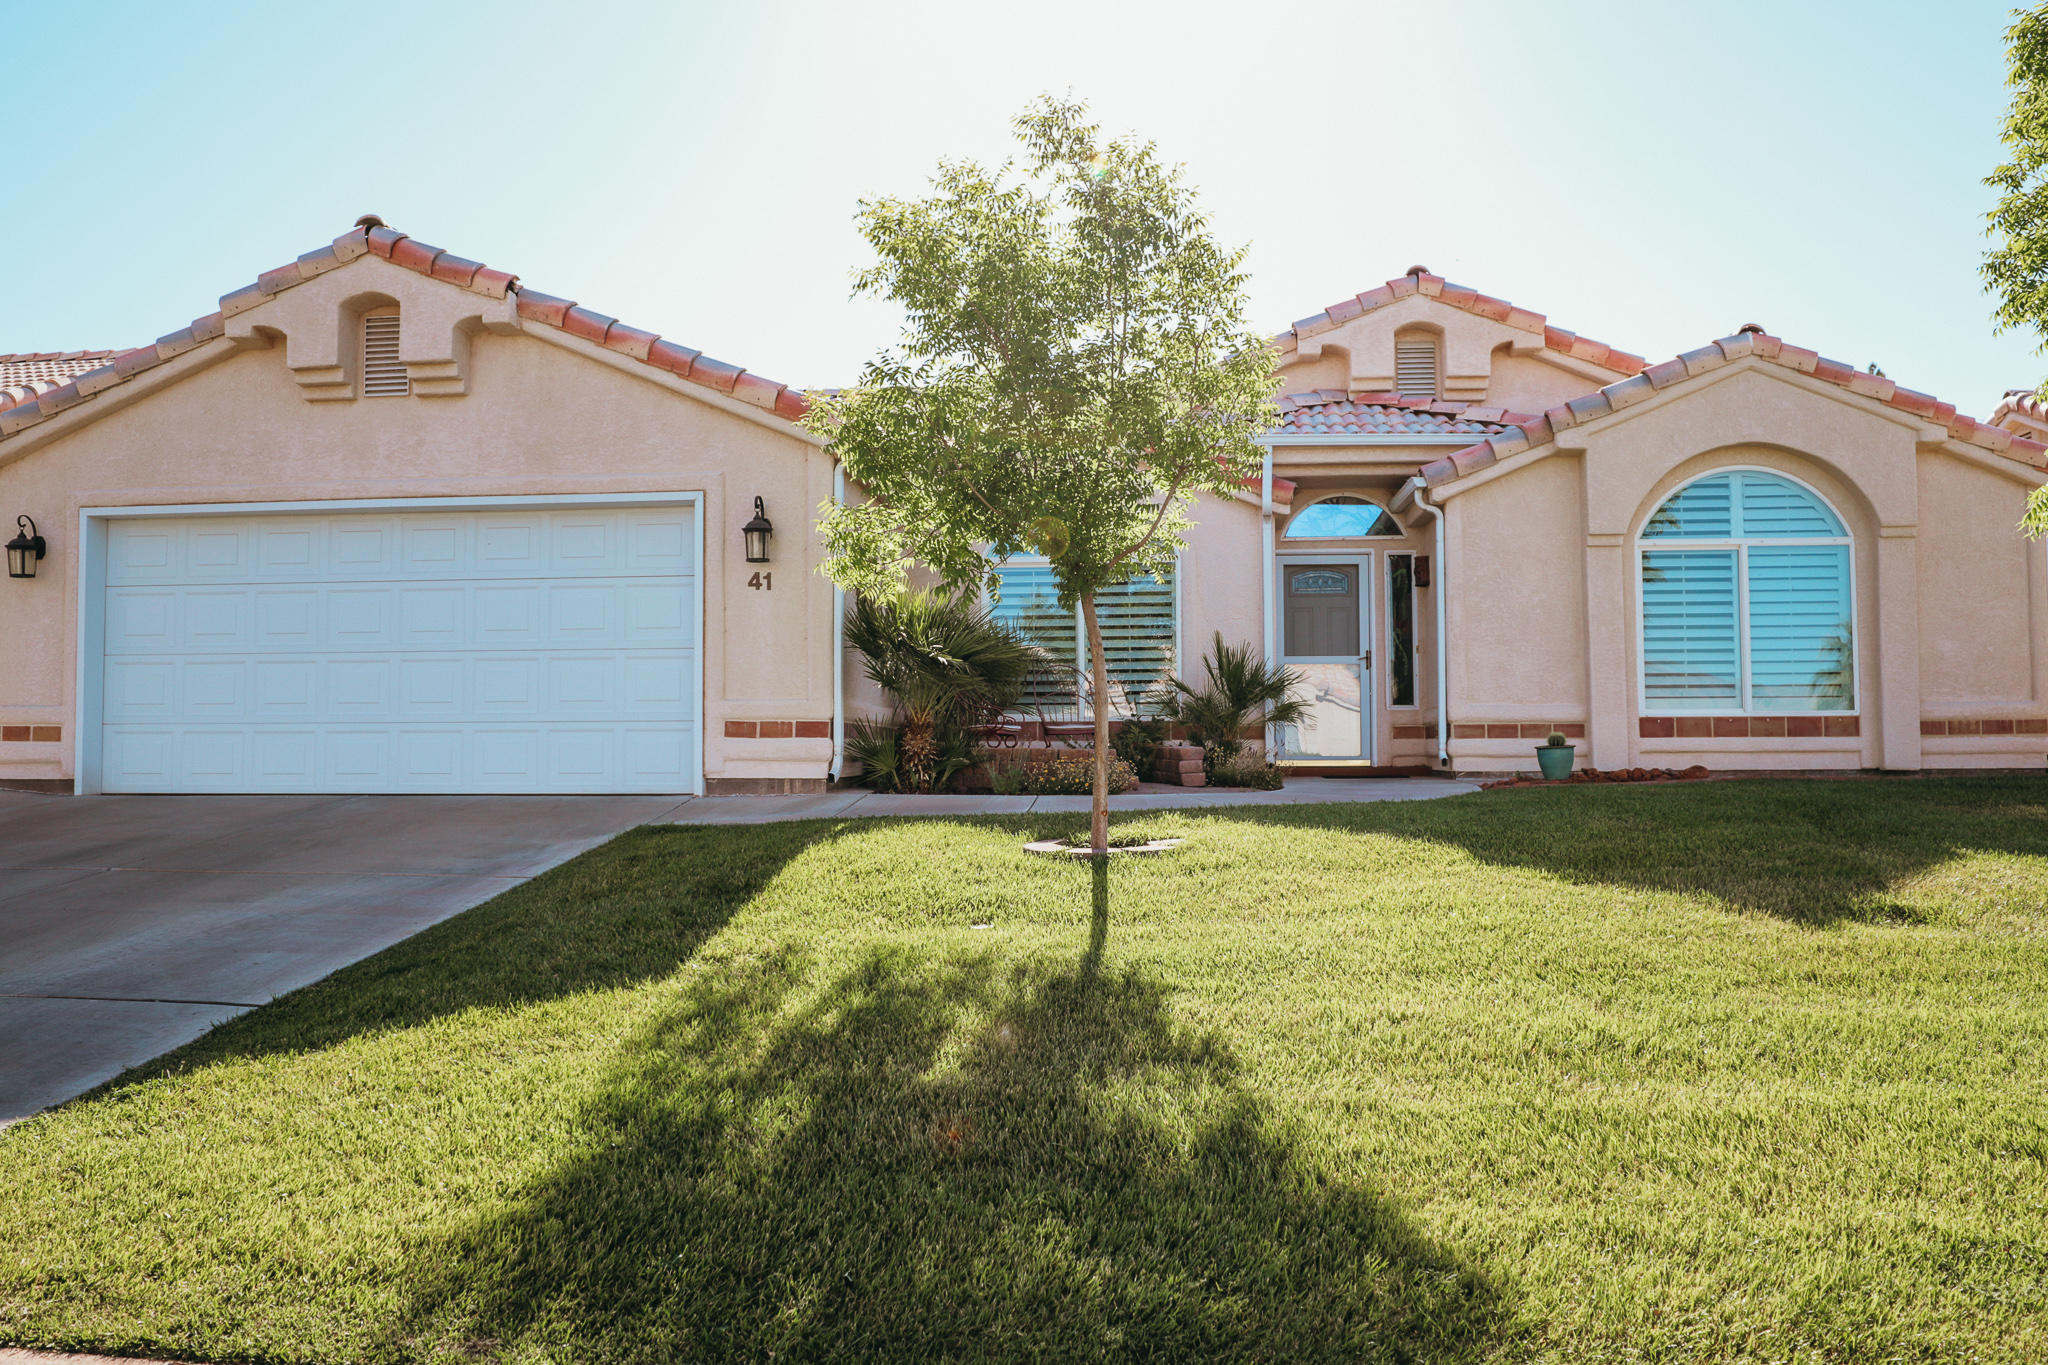 225 N Valley View #41, St George in Washington County, UT 84770 Home for Sale